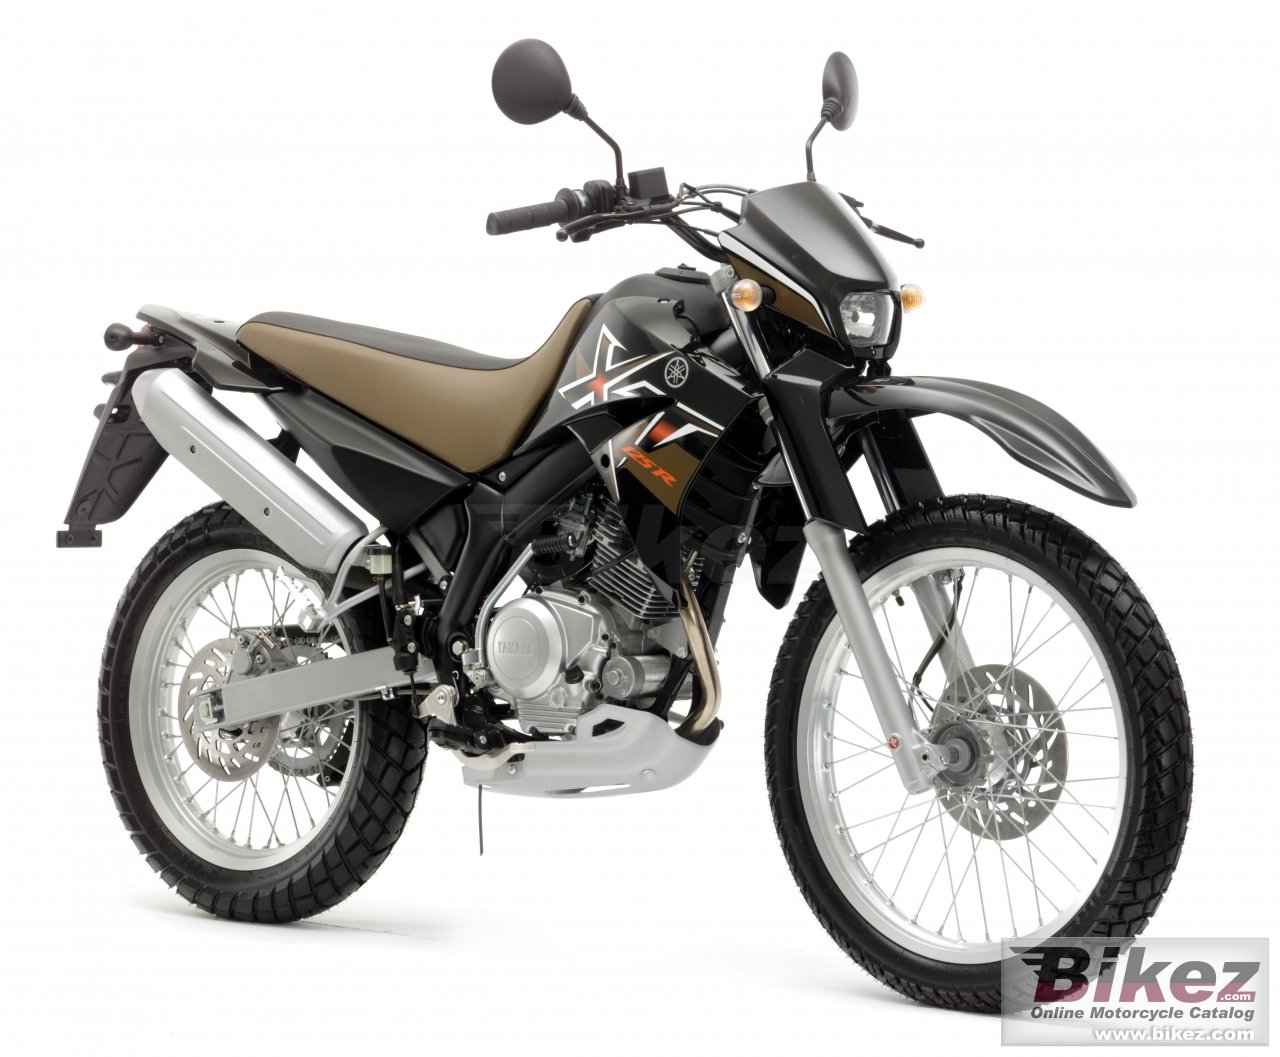 Big Yamaha xt 125 r picture and wallpaper from Bikez.com